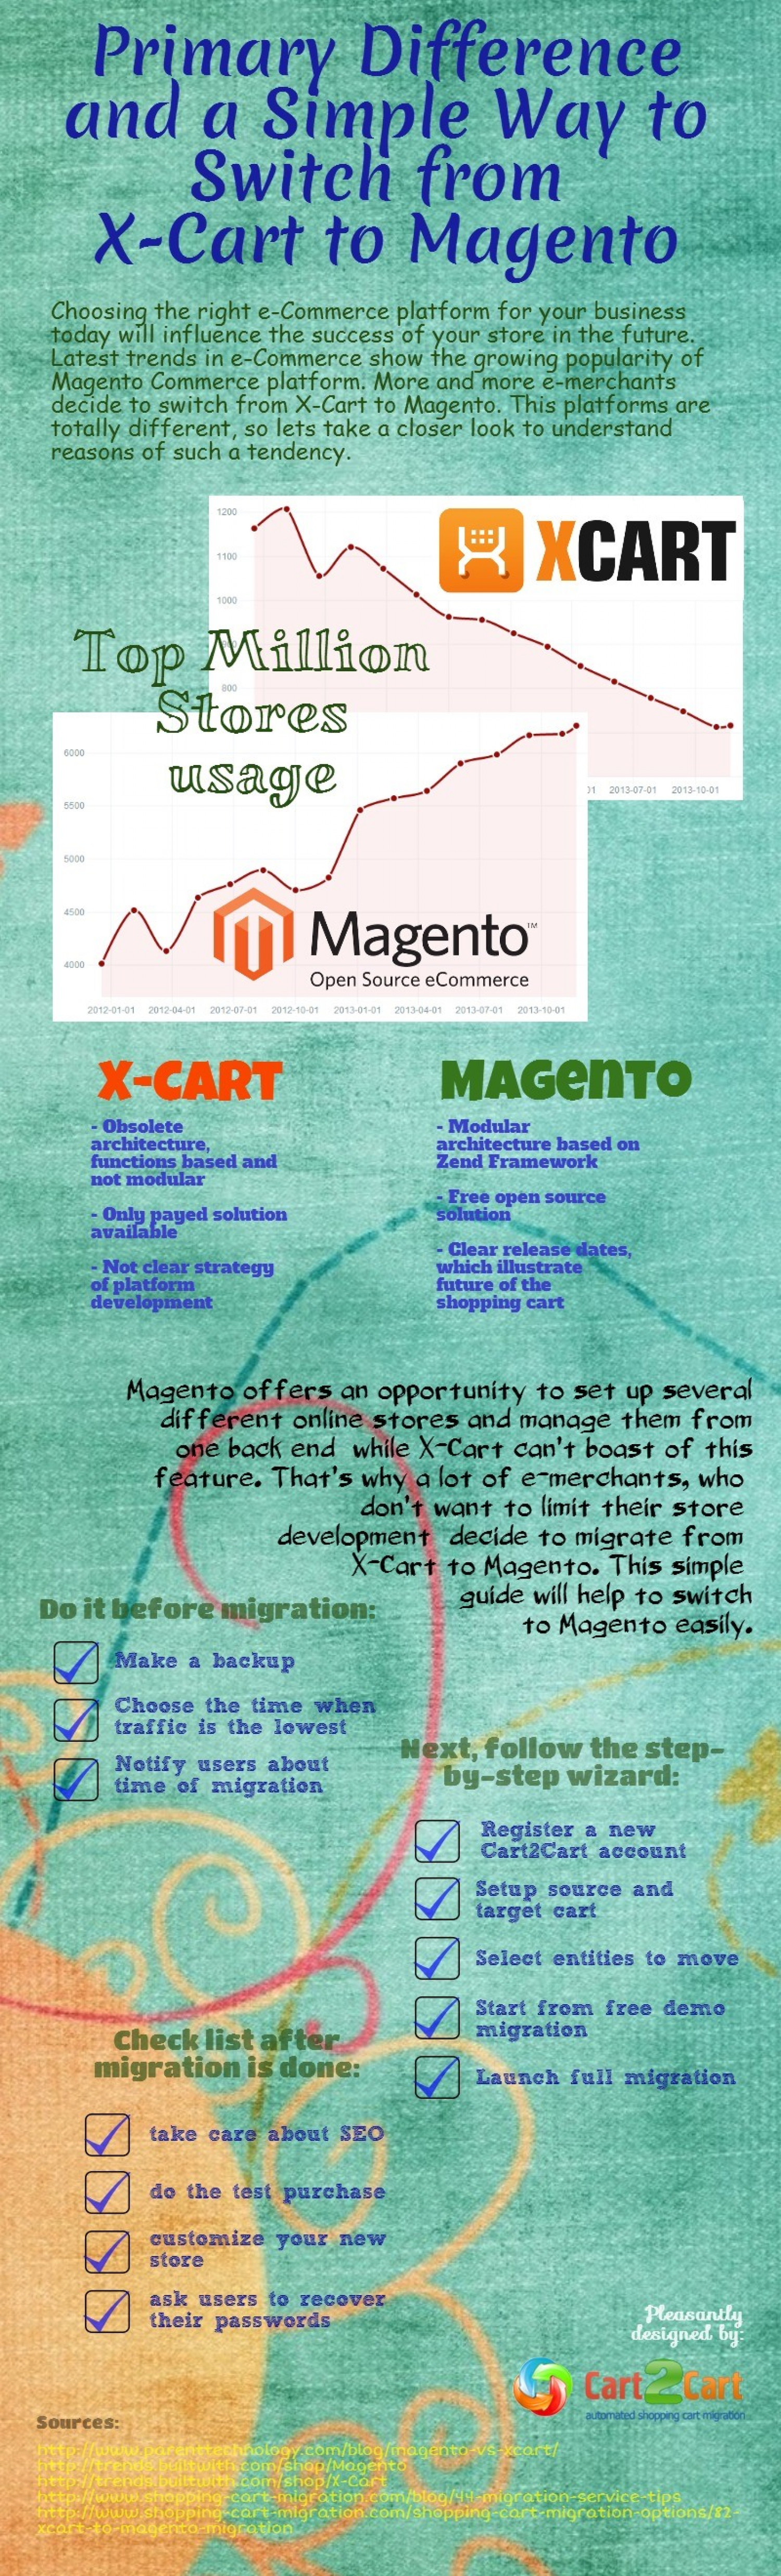 Primary Difference and a Simple Way to Switch from X-Cart to Magento Infographic